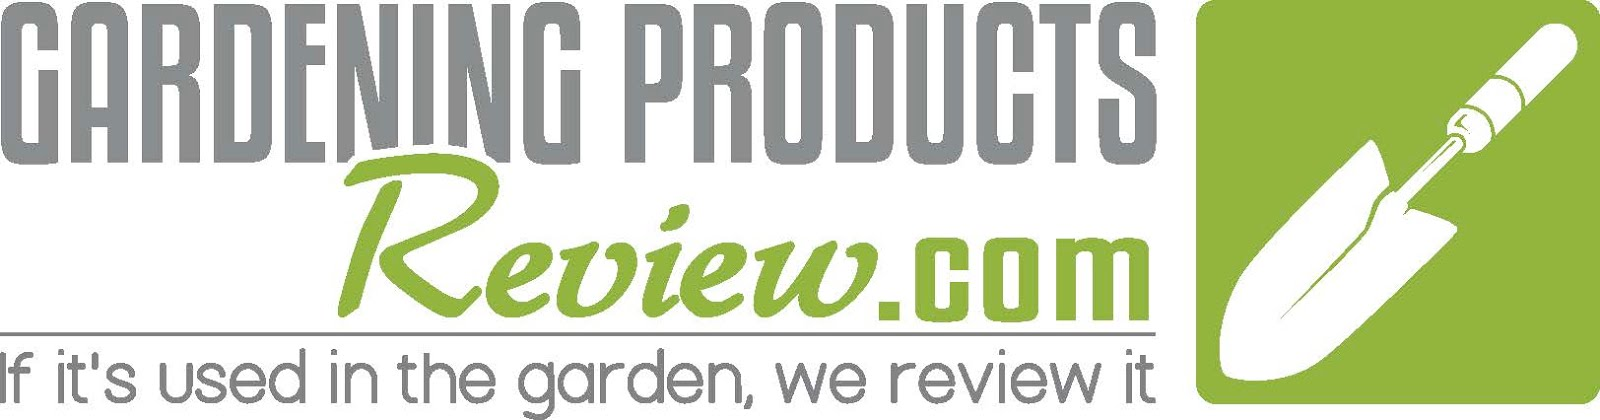 Gardening Products Review - gardening products tested and reviewed